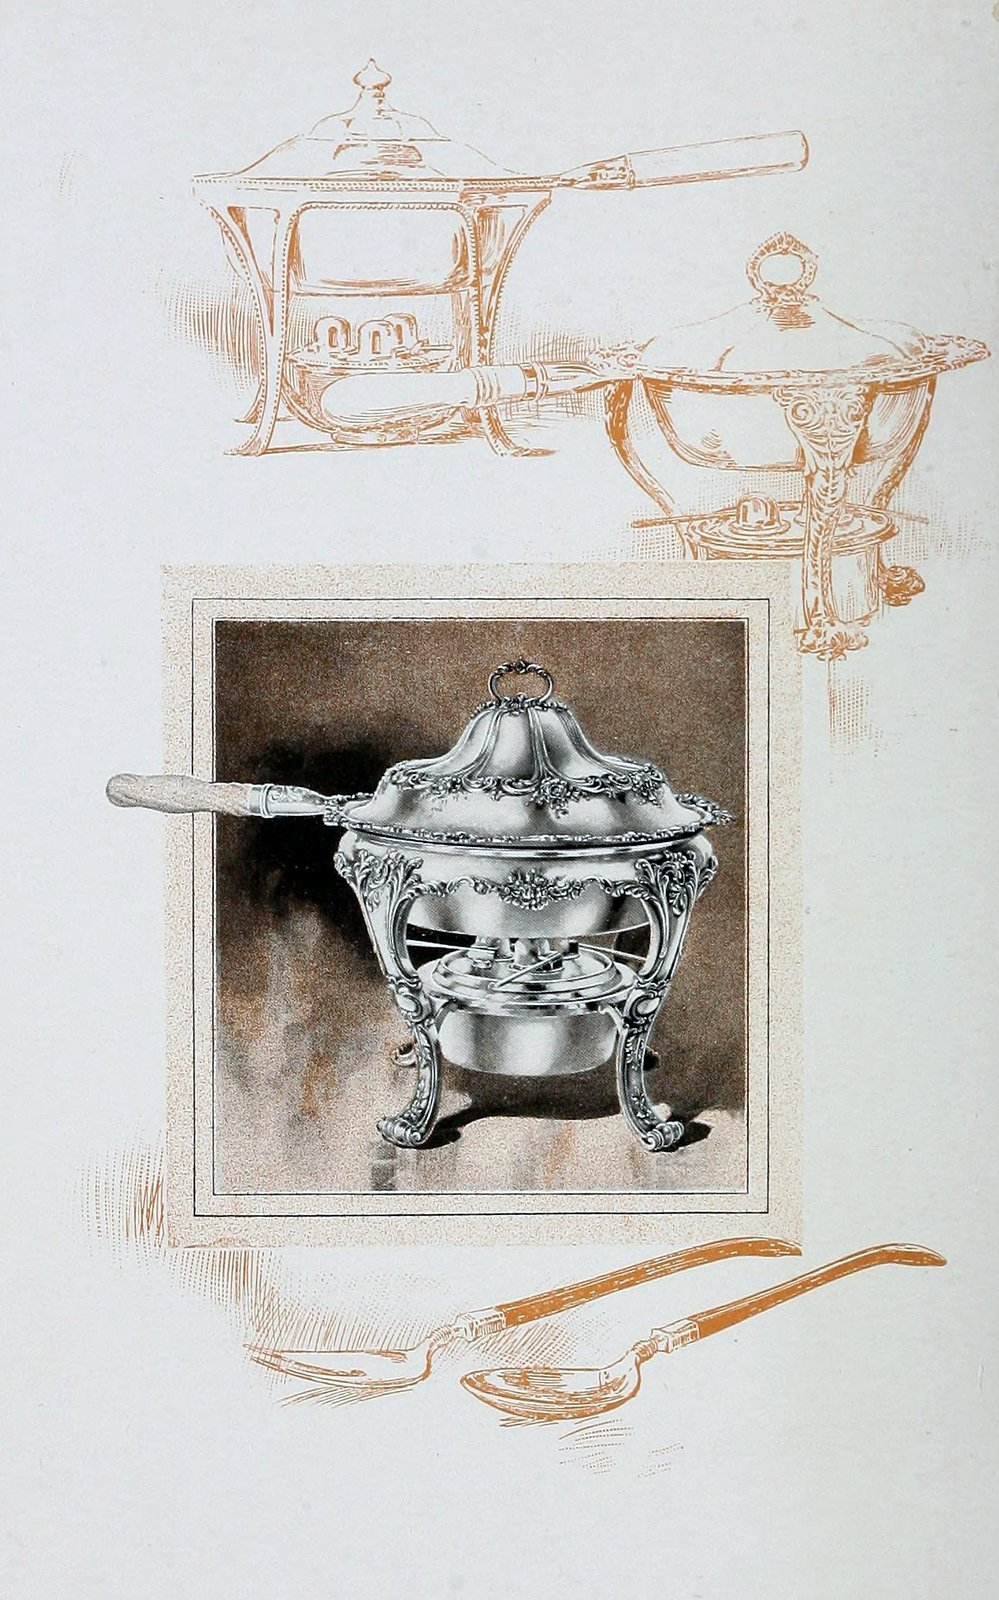 Chafing dishes and Furshings